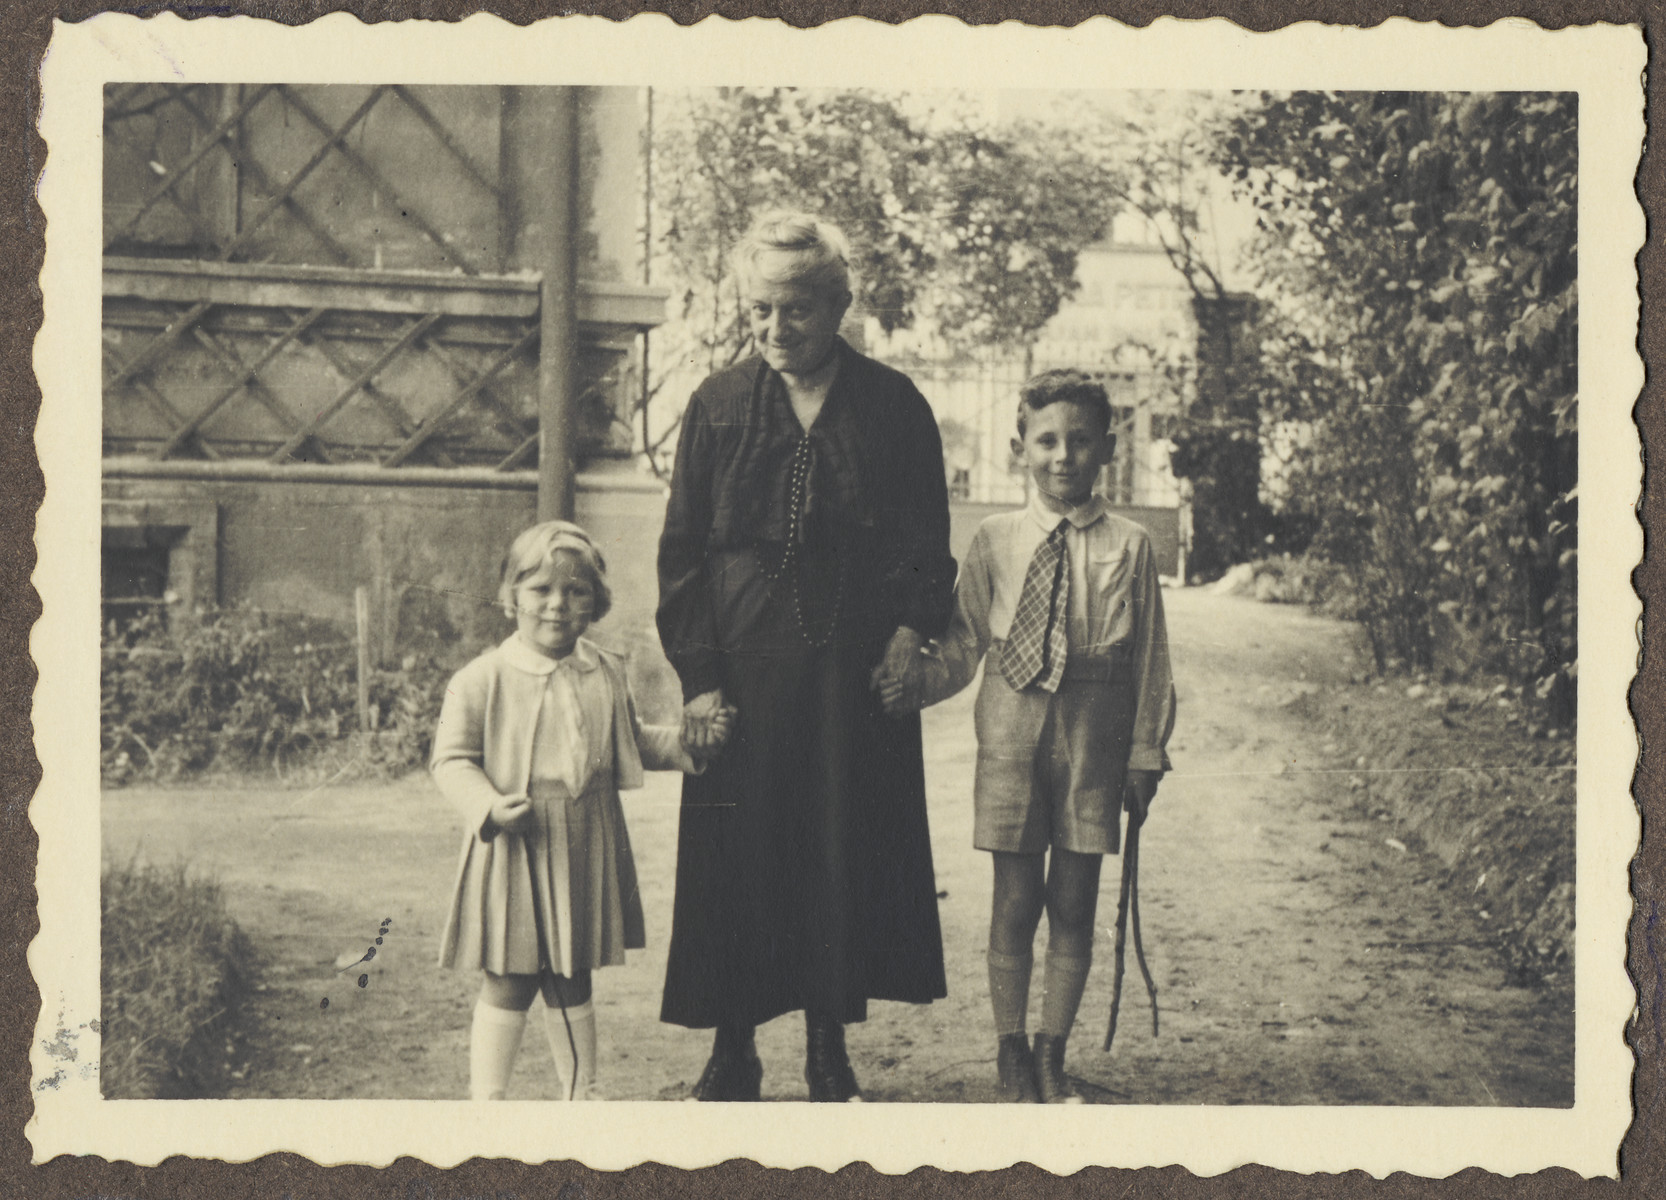 An elderly Czech Jewish woman walks through a garden with two young relatives.  Pictured on the right is Michal Kraus; on the left is his cousin Eva Schur.  The woman in the center is probably Eva's great grandmother.  Eva Schur, was the daughter of Franta Schur, the cousin of Michal Kraus.  Eva perished in Auschwitz with her mother and brother, while her father, Franta Schur survived the war in England.  The picture was taken in the garden of the house belonging to her grandmother, Jenny Schur.